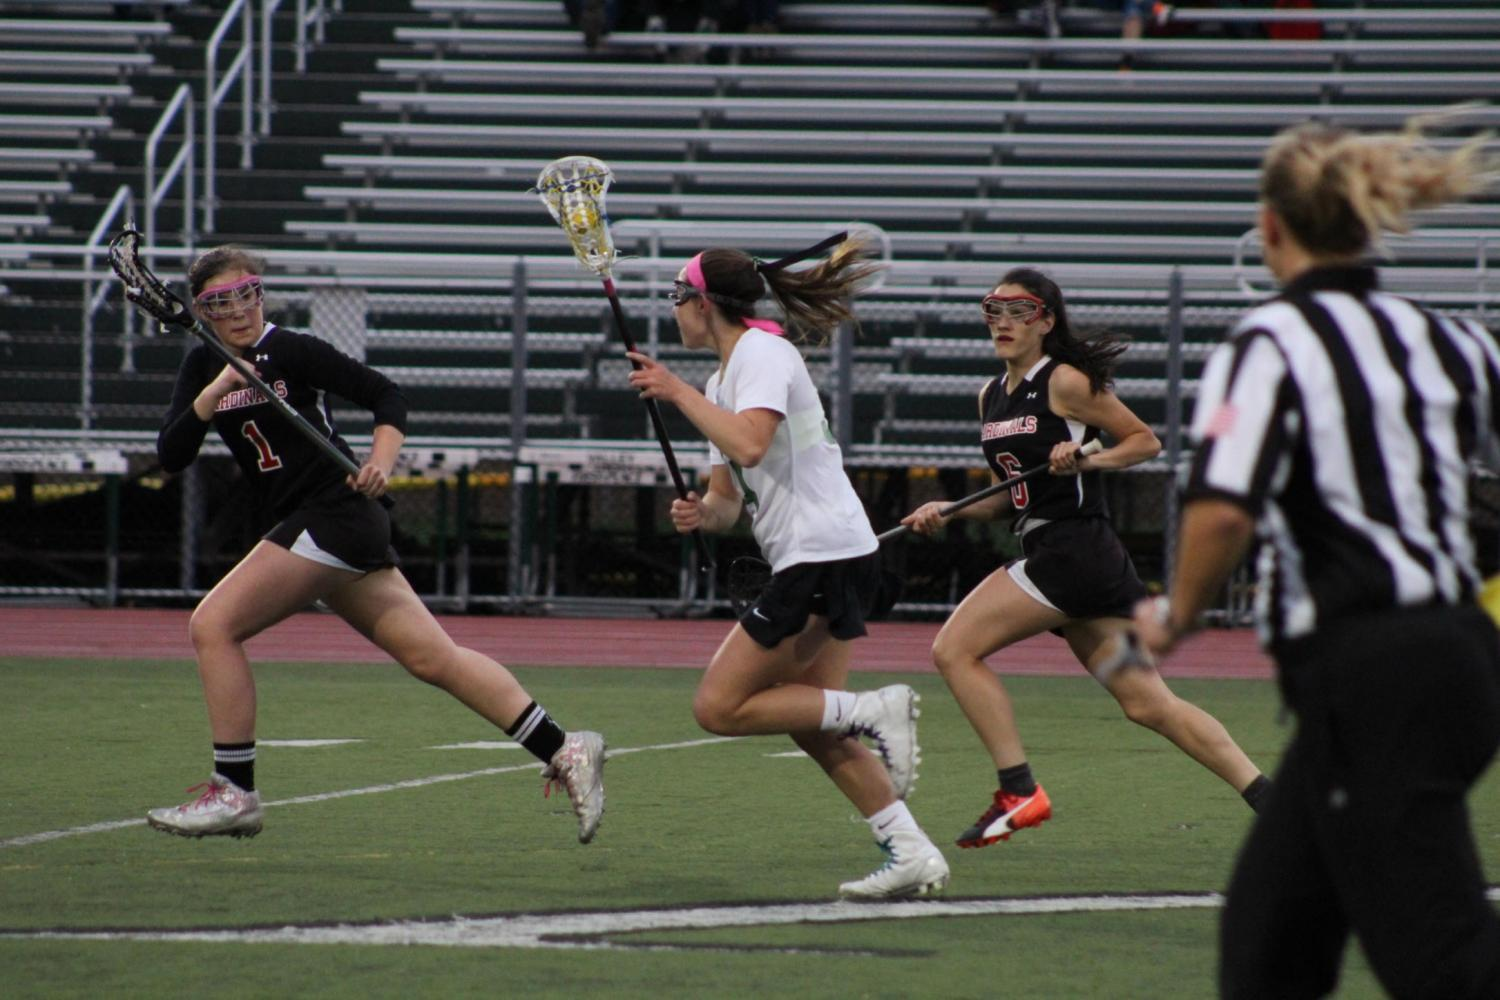 Elisabeth Ralph will look to once again be the driving force for the Pascack Valley offense in the second round of the Bergen County Tournament